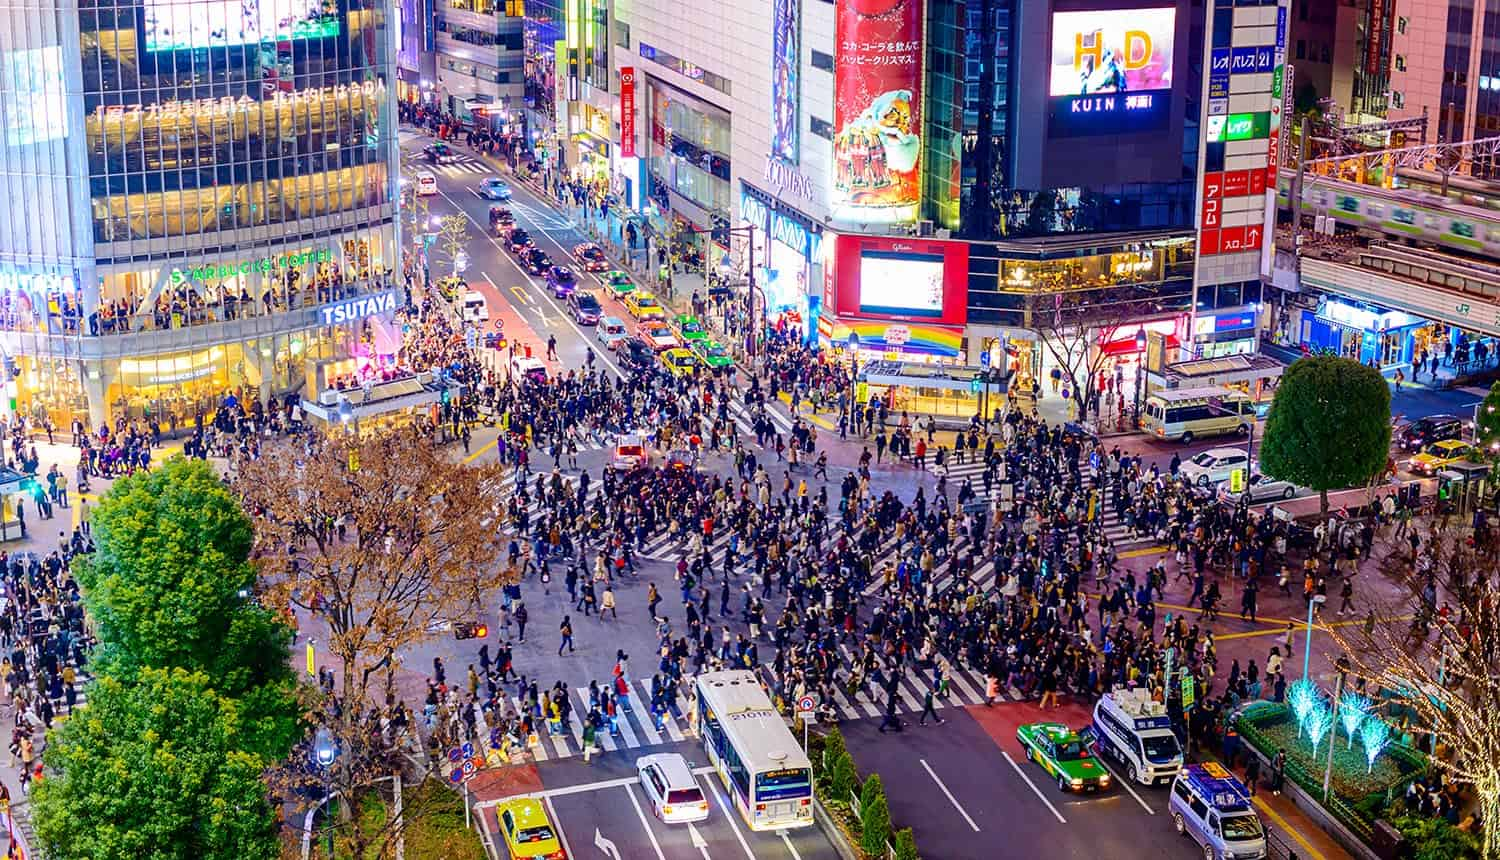 Image of crowd crossing a busy road junction representing the questionable actions by good organizations for the greater good